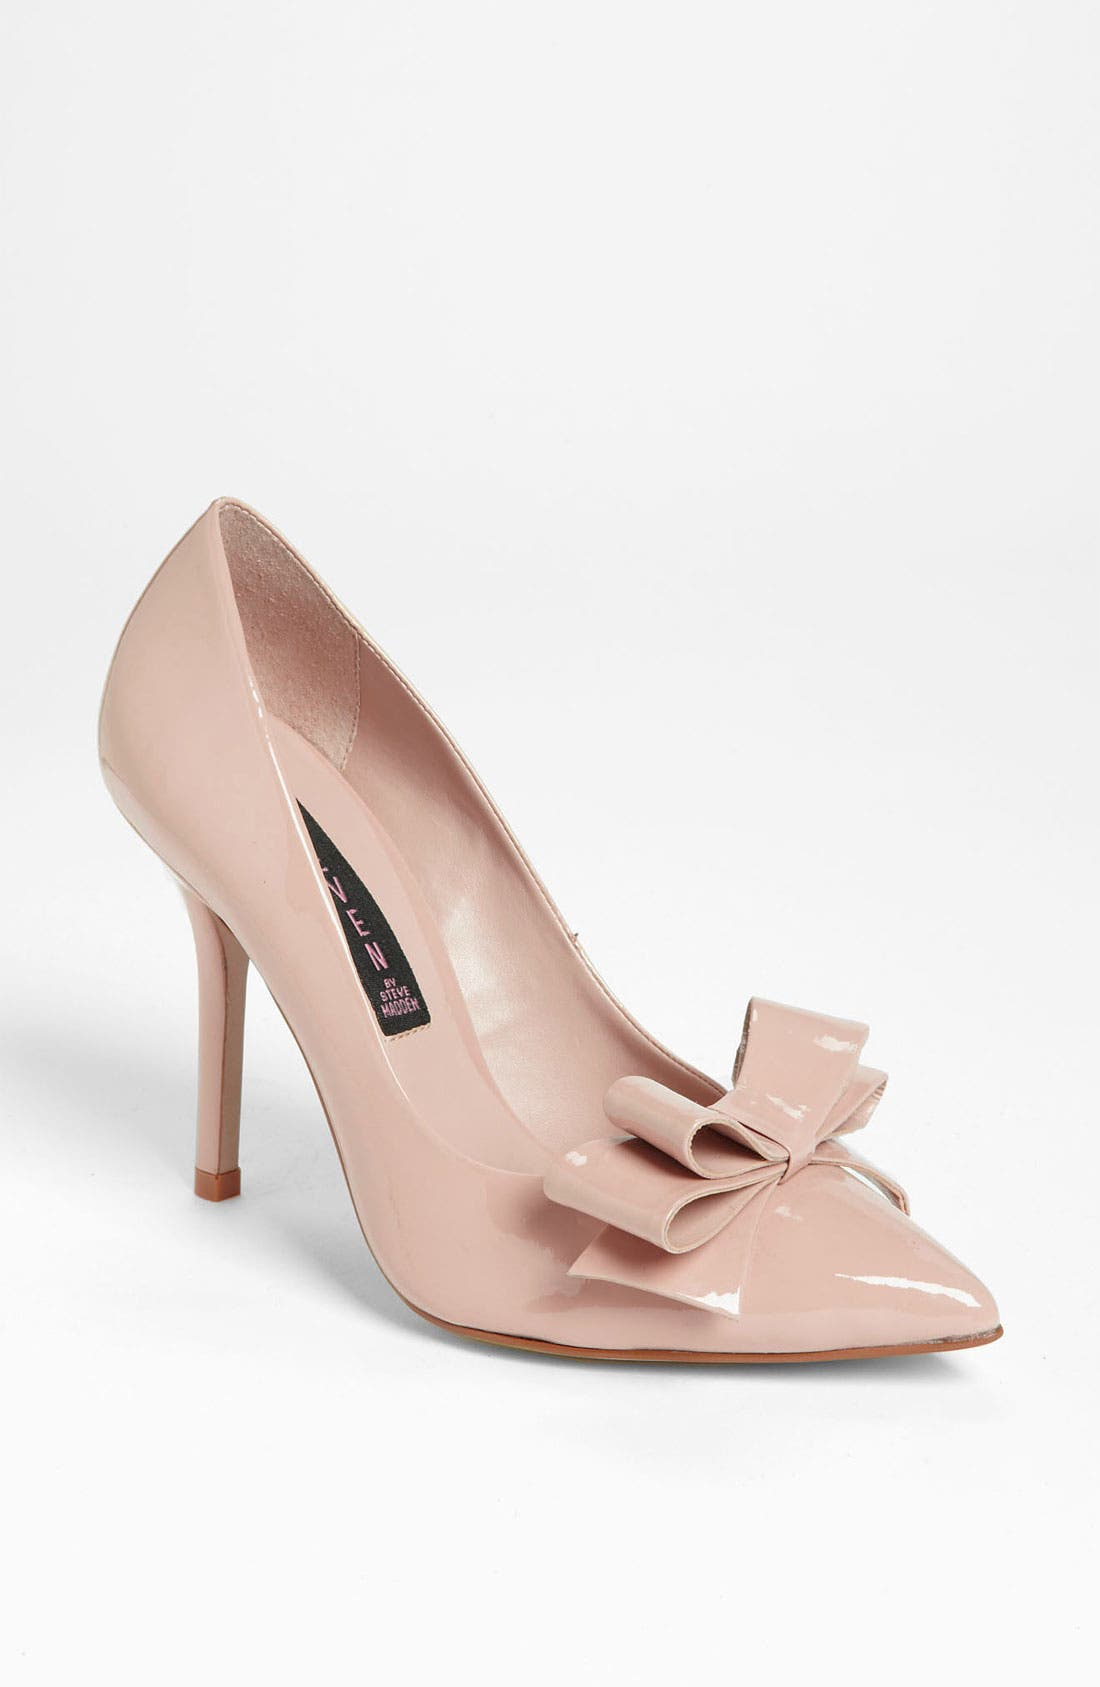 Alternate Image 1 Selected - Steven by Steve Madden 'Ravesh' Pump